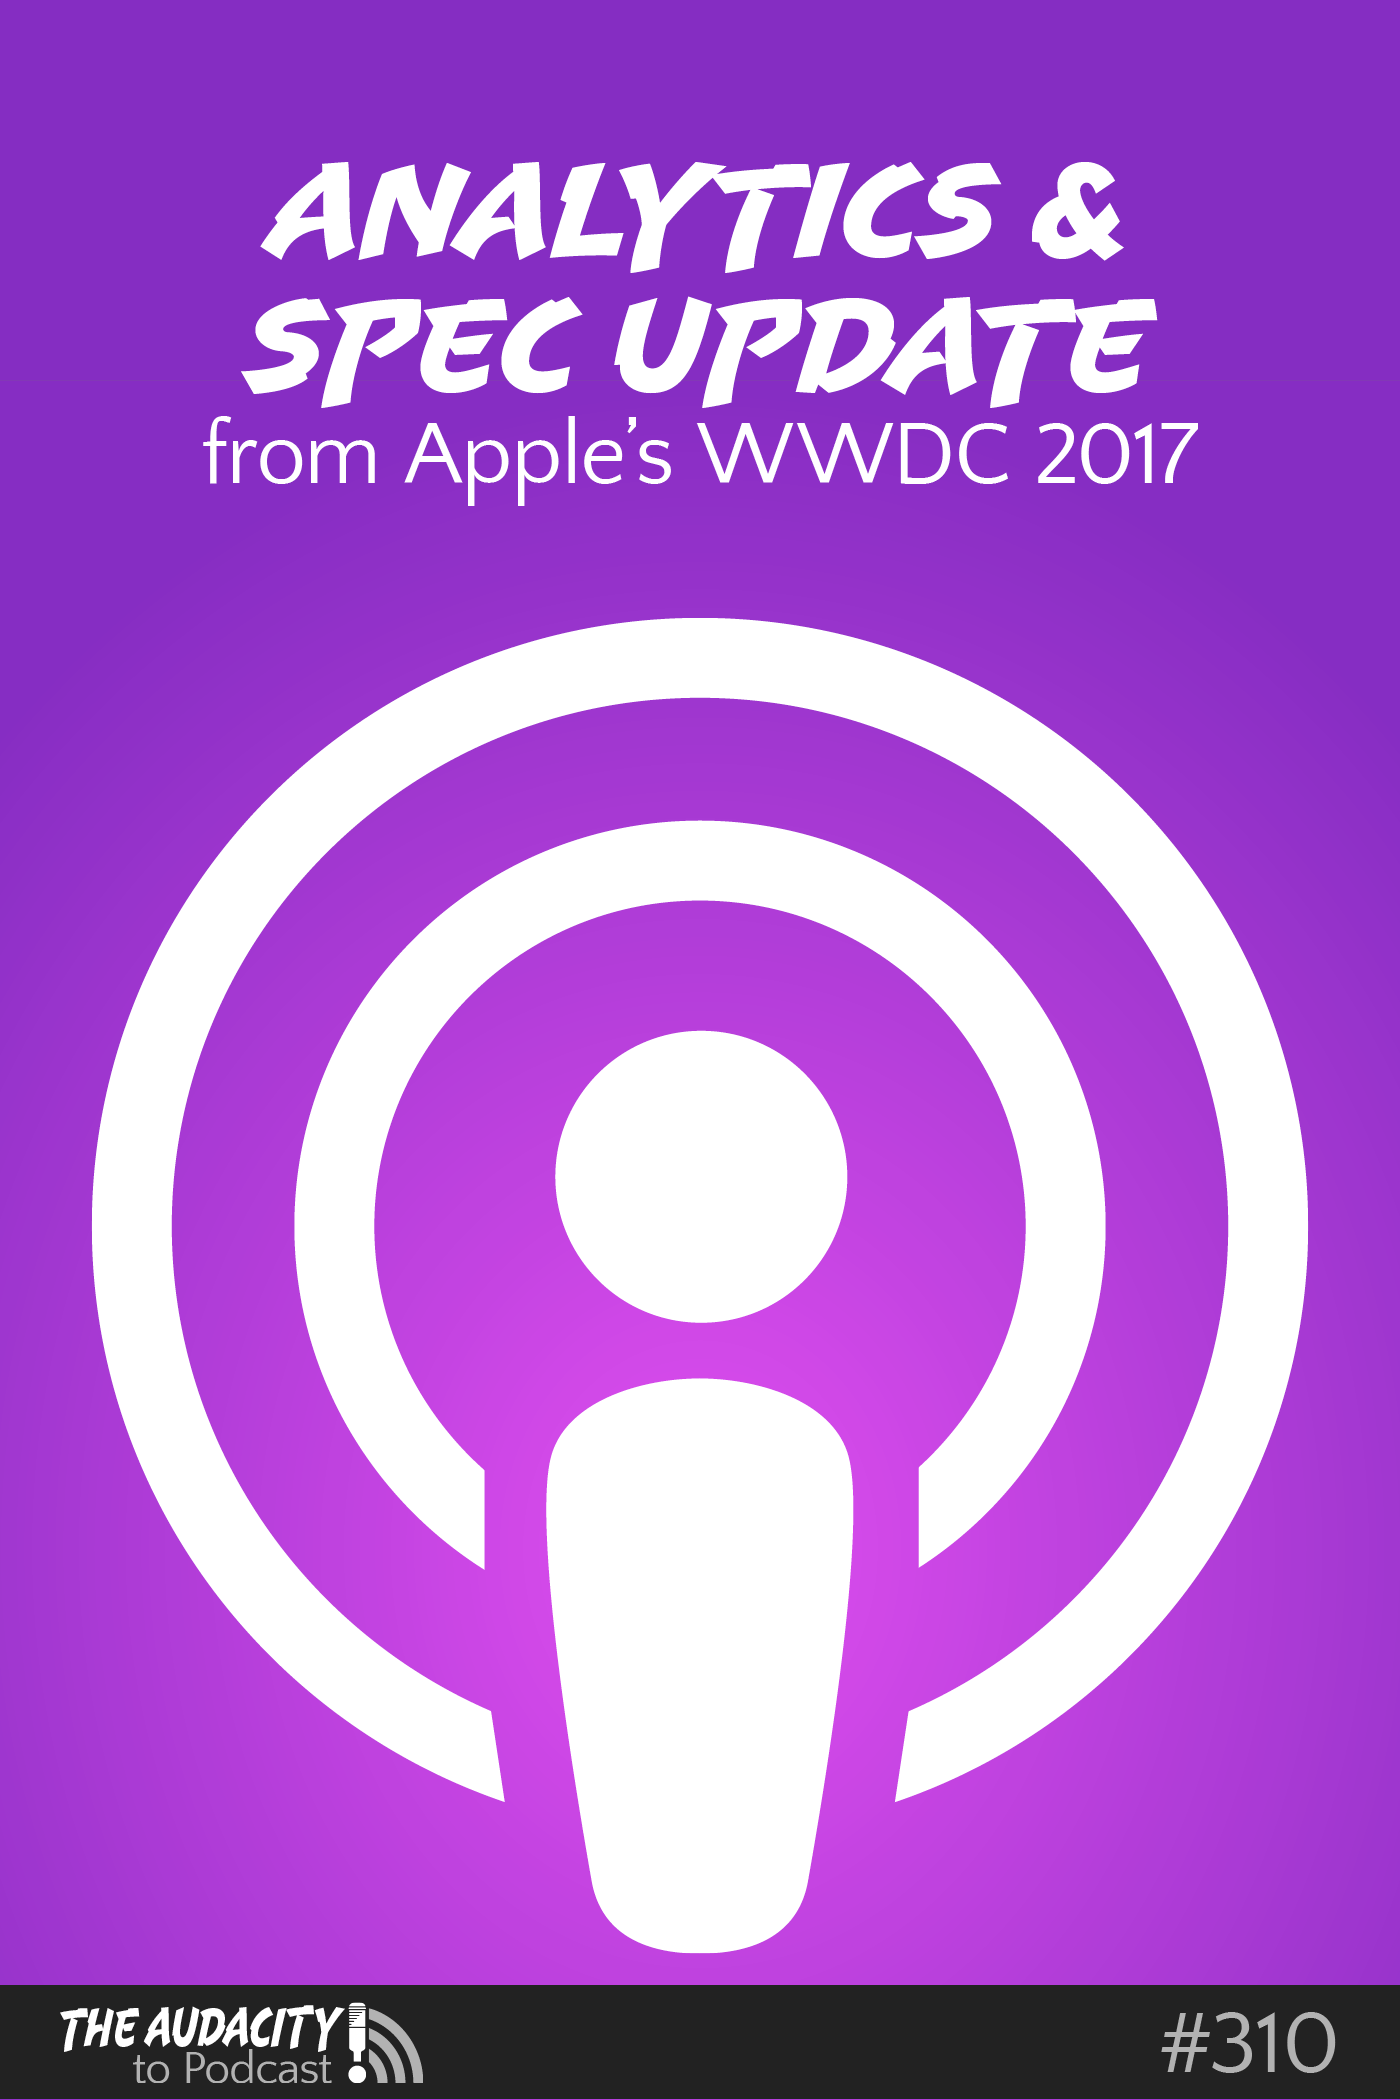 Apple's iOS 11, Podcast Analytics, & Podcasting Spec